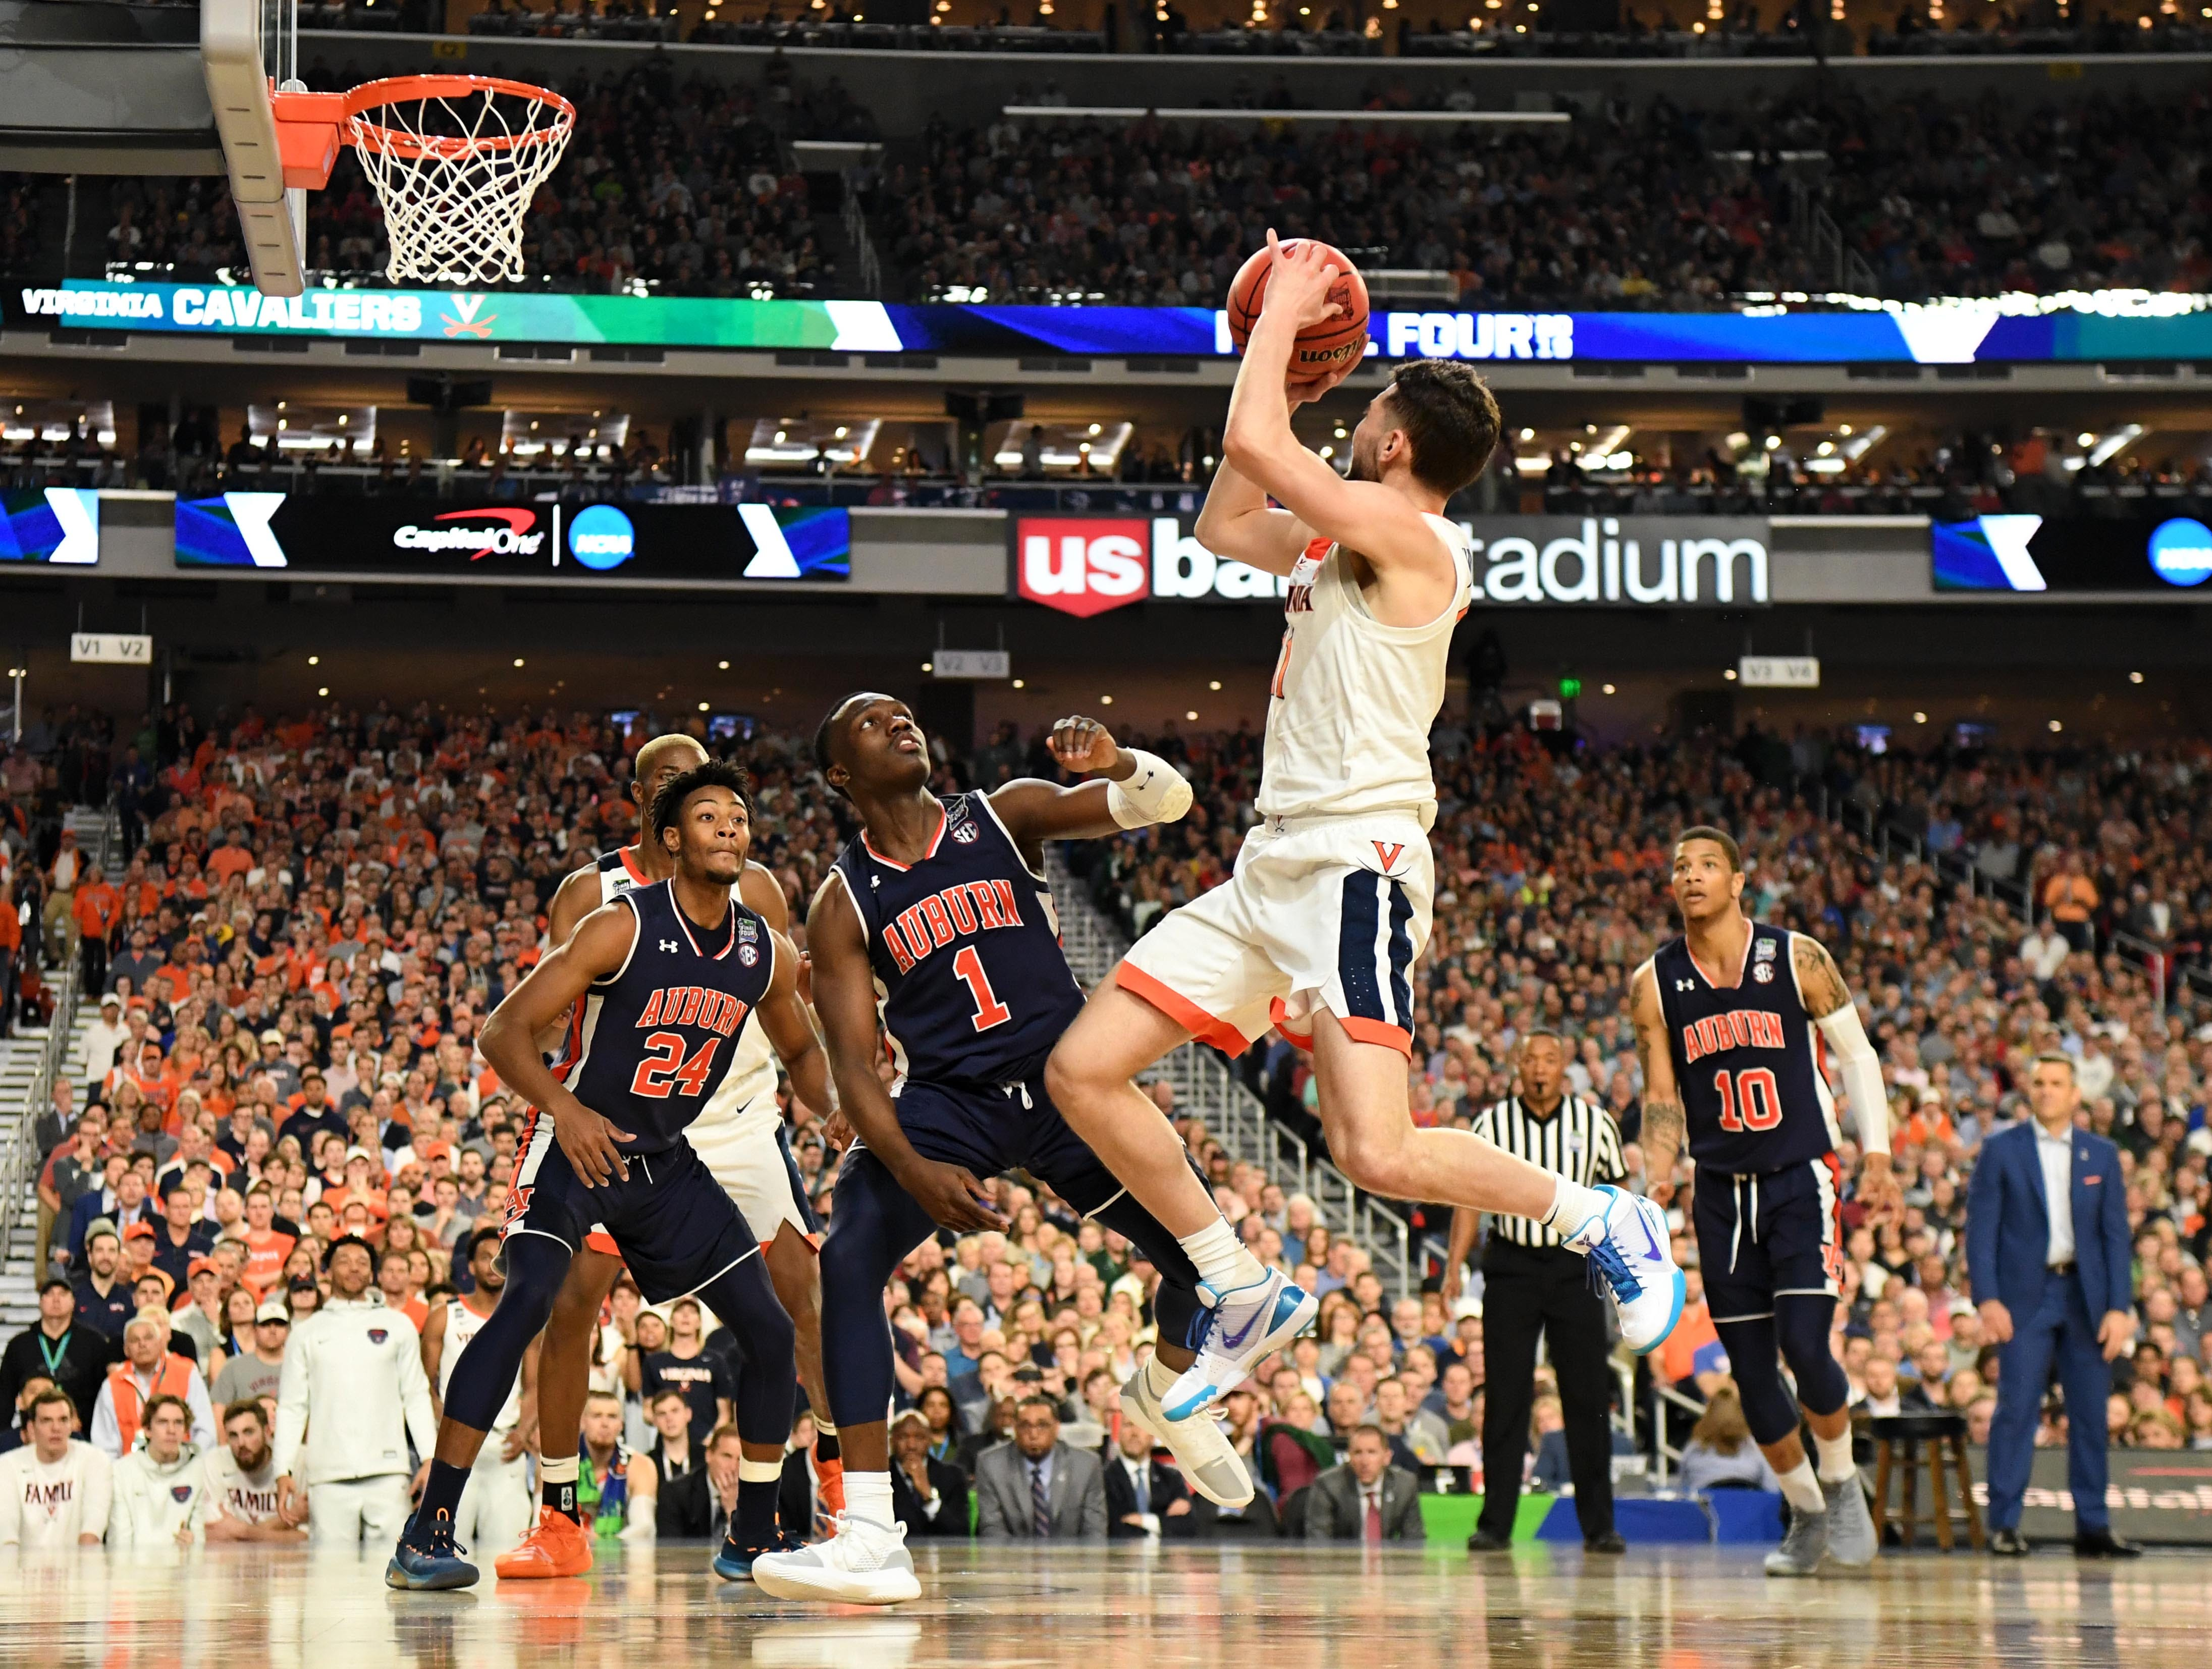 Virginia Cavaliers guard Ty Jerome (11) shoots against Auburn Tigers guard Jared Harper (1).